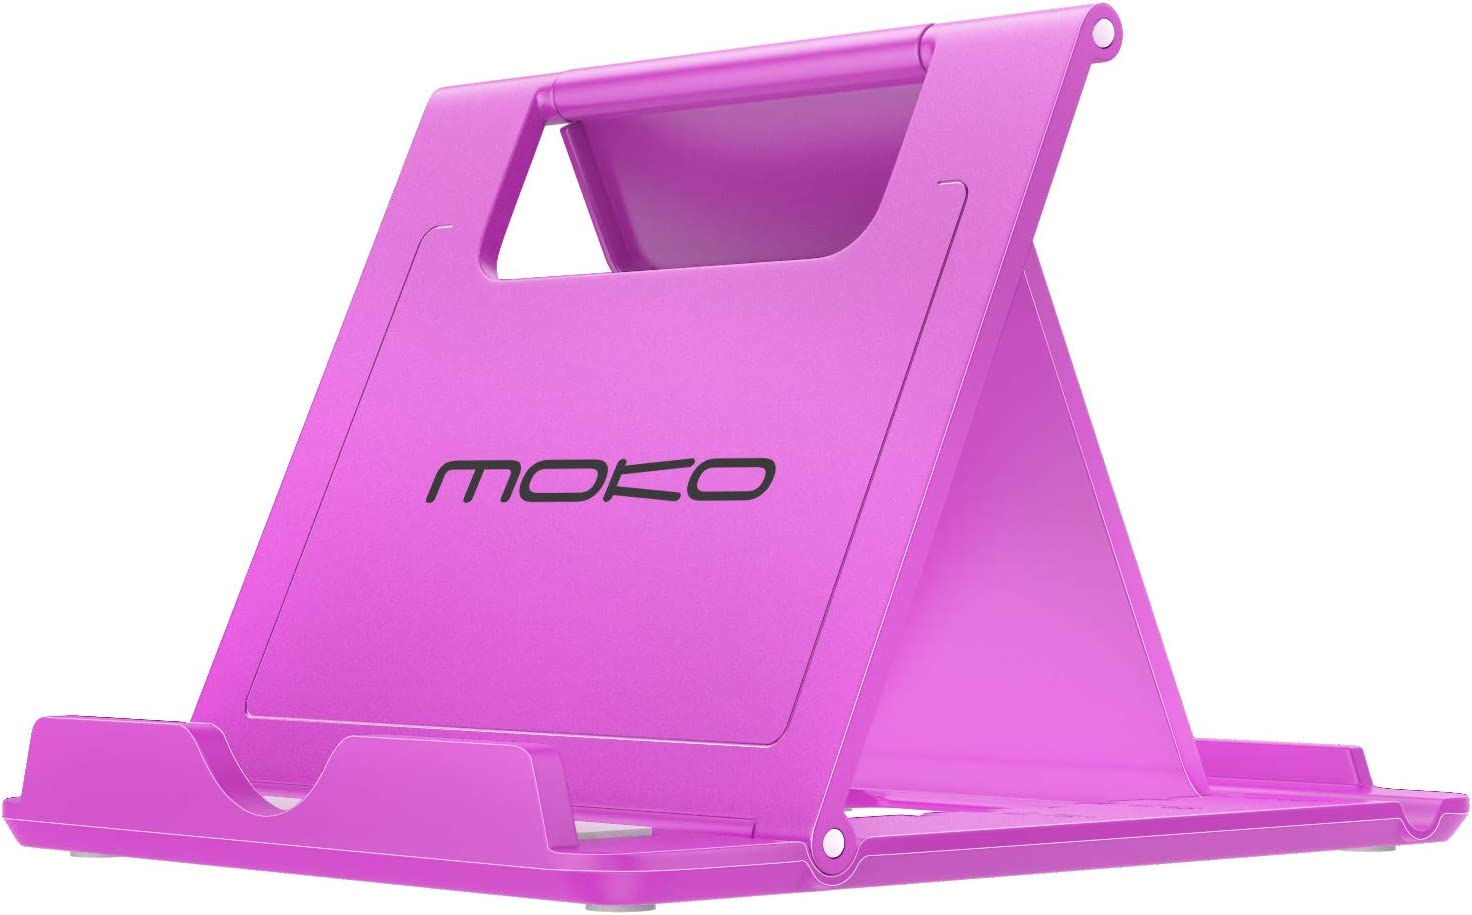 """MoKo Phone/Tablet Stand, Foldable Desktop Holder Fit with iPhone 11 Pro Max/11 Pro/11, iPhone Xs/Xs Max/Xr/X, iPhone SE 2020, iPad Pro 11 2020/10.2/Air 3/Mini 5, Galaxy S20 6.2"""", Purple"""